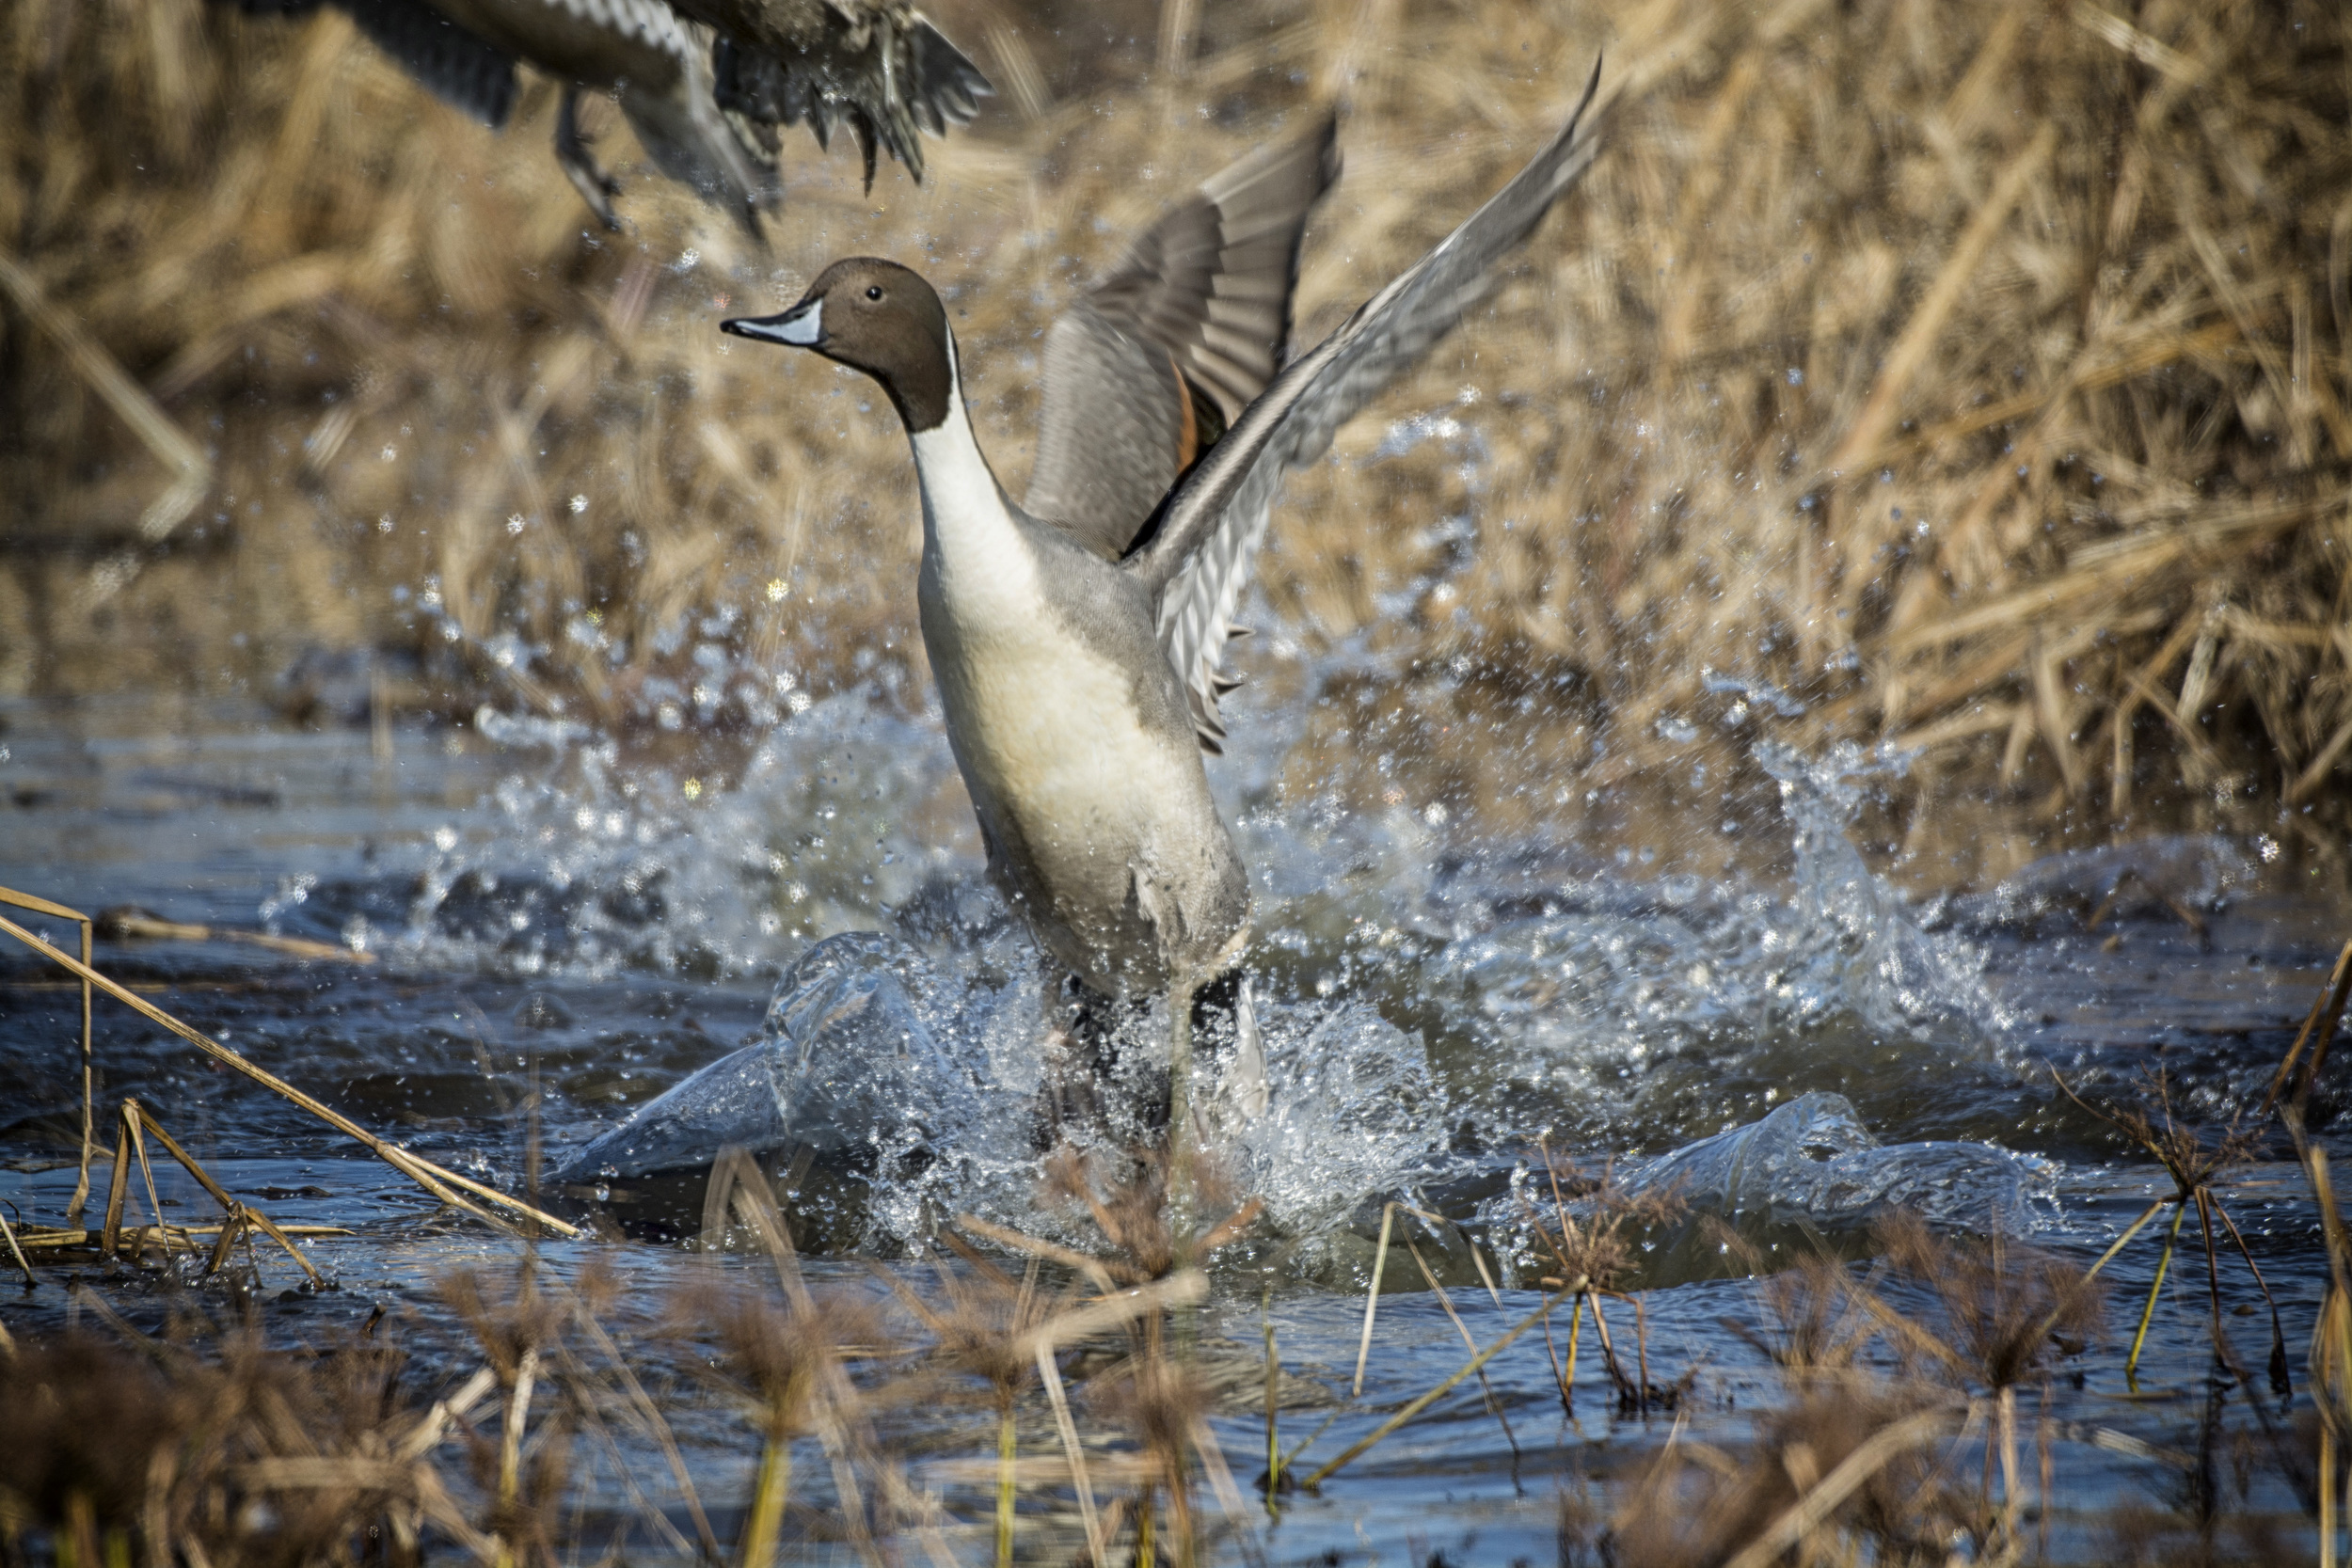 Pintail duck taking off